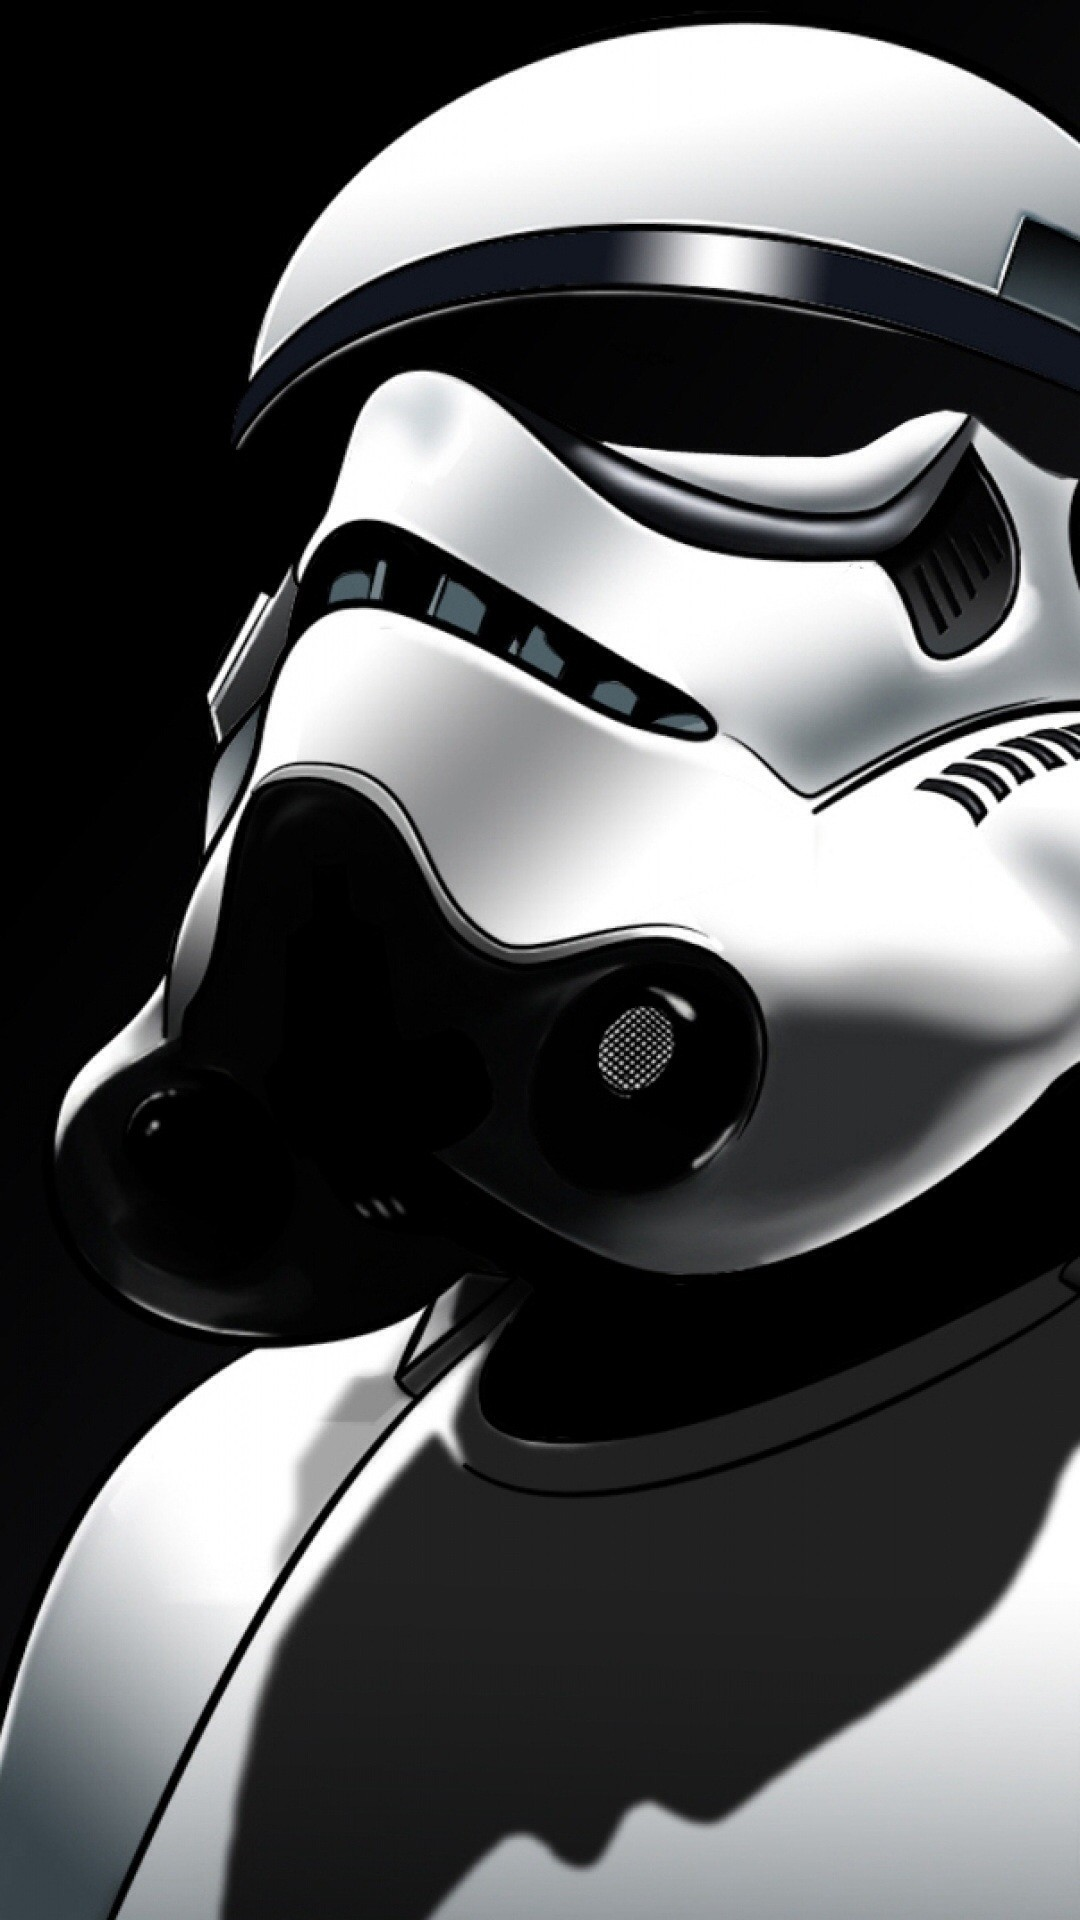 Star Wars phone wallpaper ·① Download free wallpapers for desktop, mobile, laptop in any ...